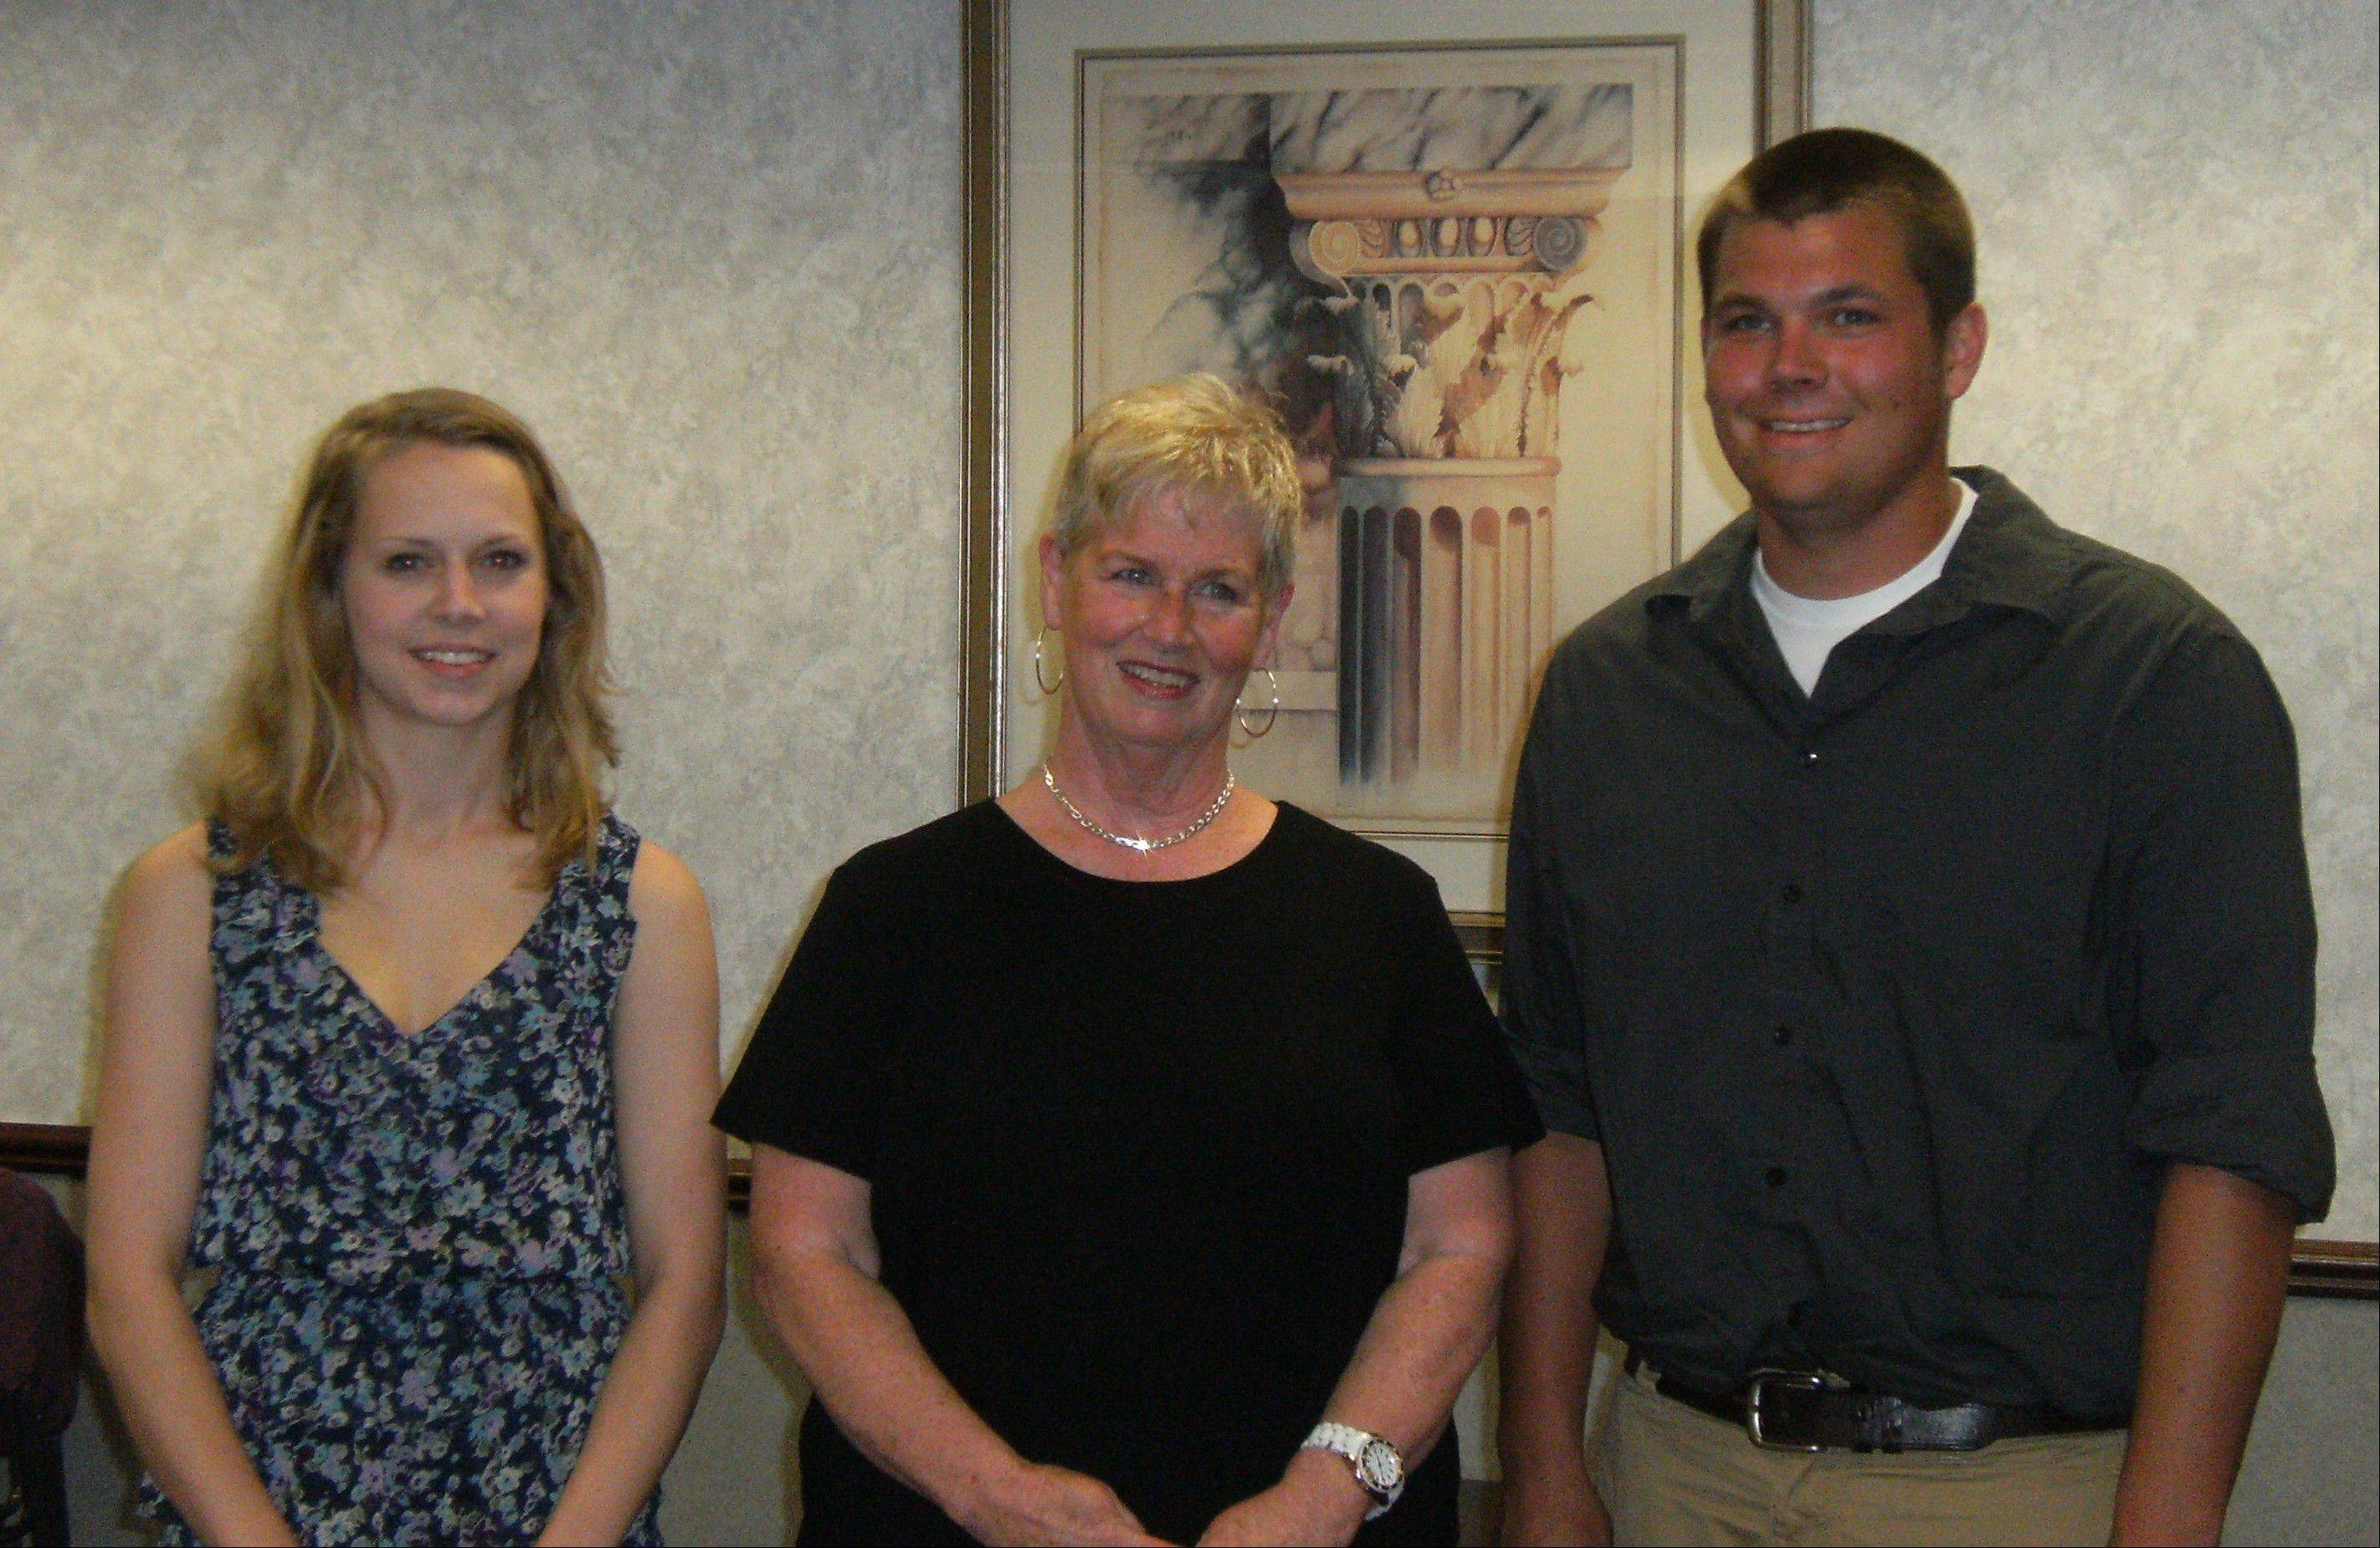 From left, Grayslake Greenery Garden Club scholarship winner Claire Cameron, scholarship chair Kathy Carper and scholarship winner Jeremy Terlap.